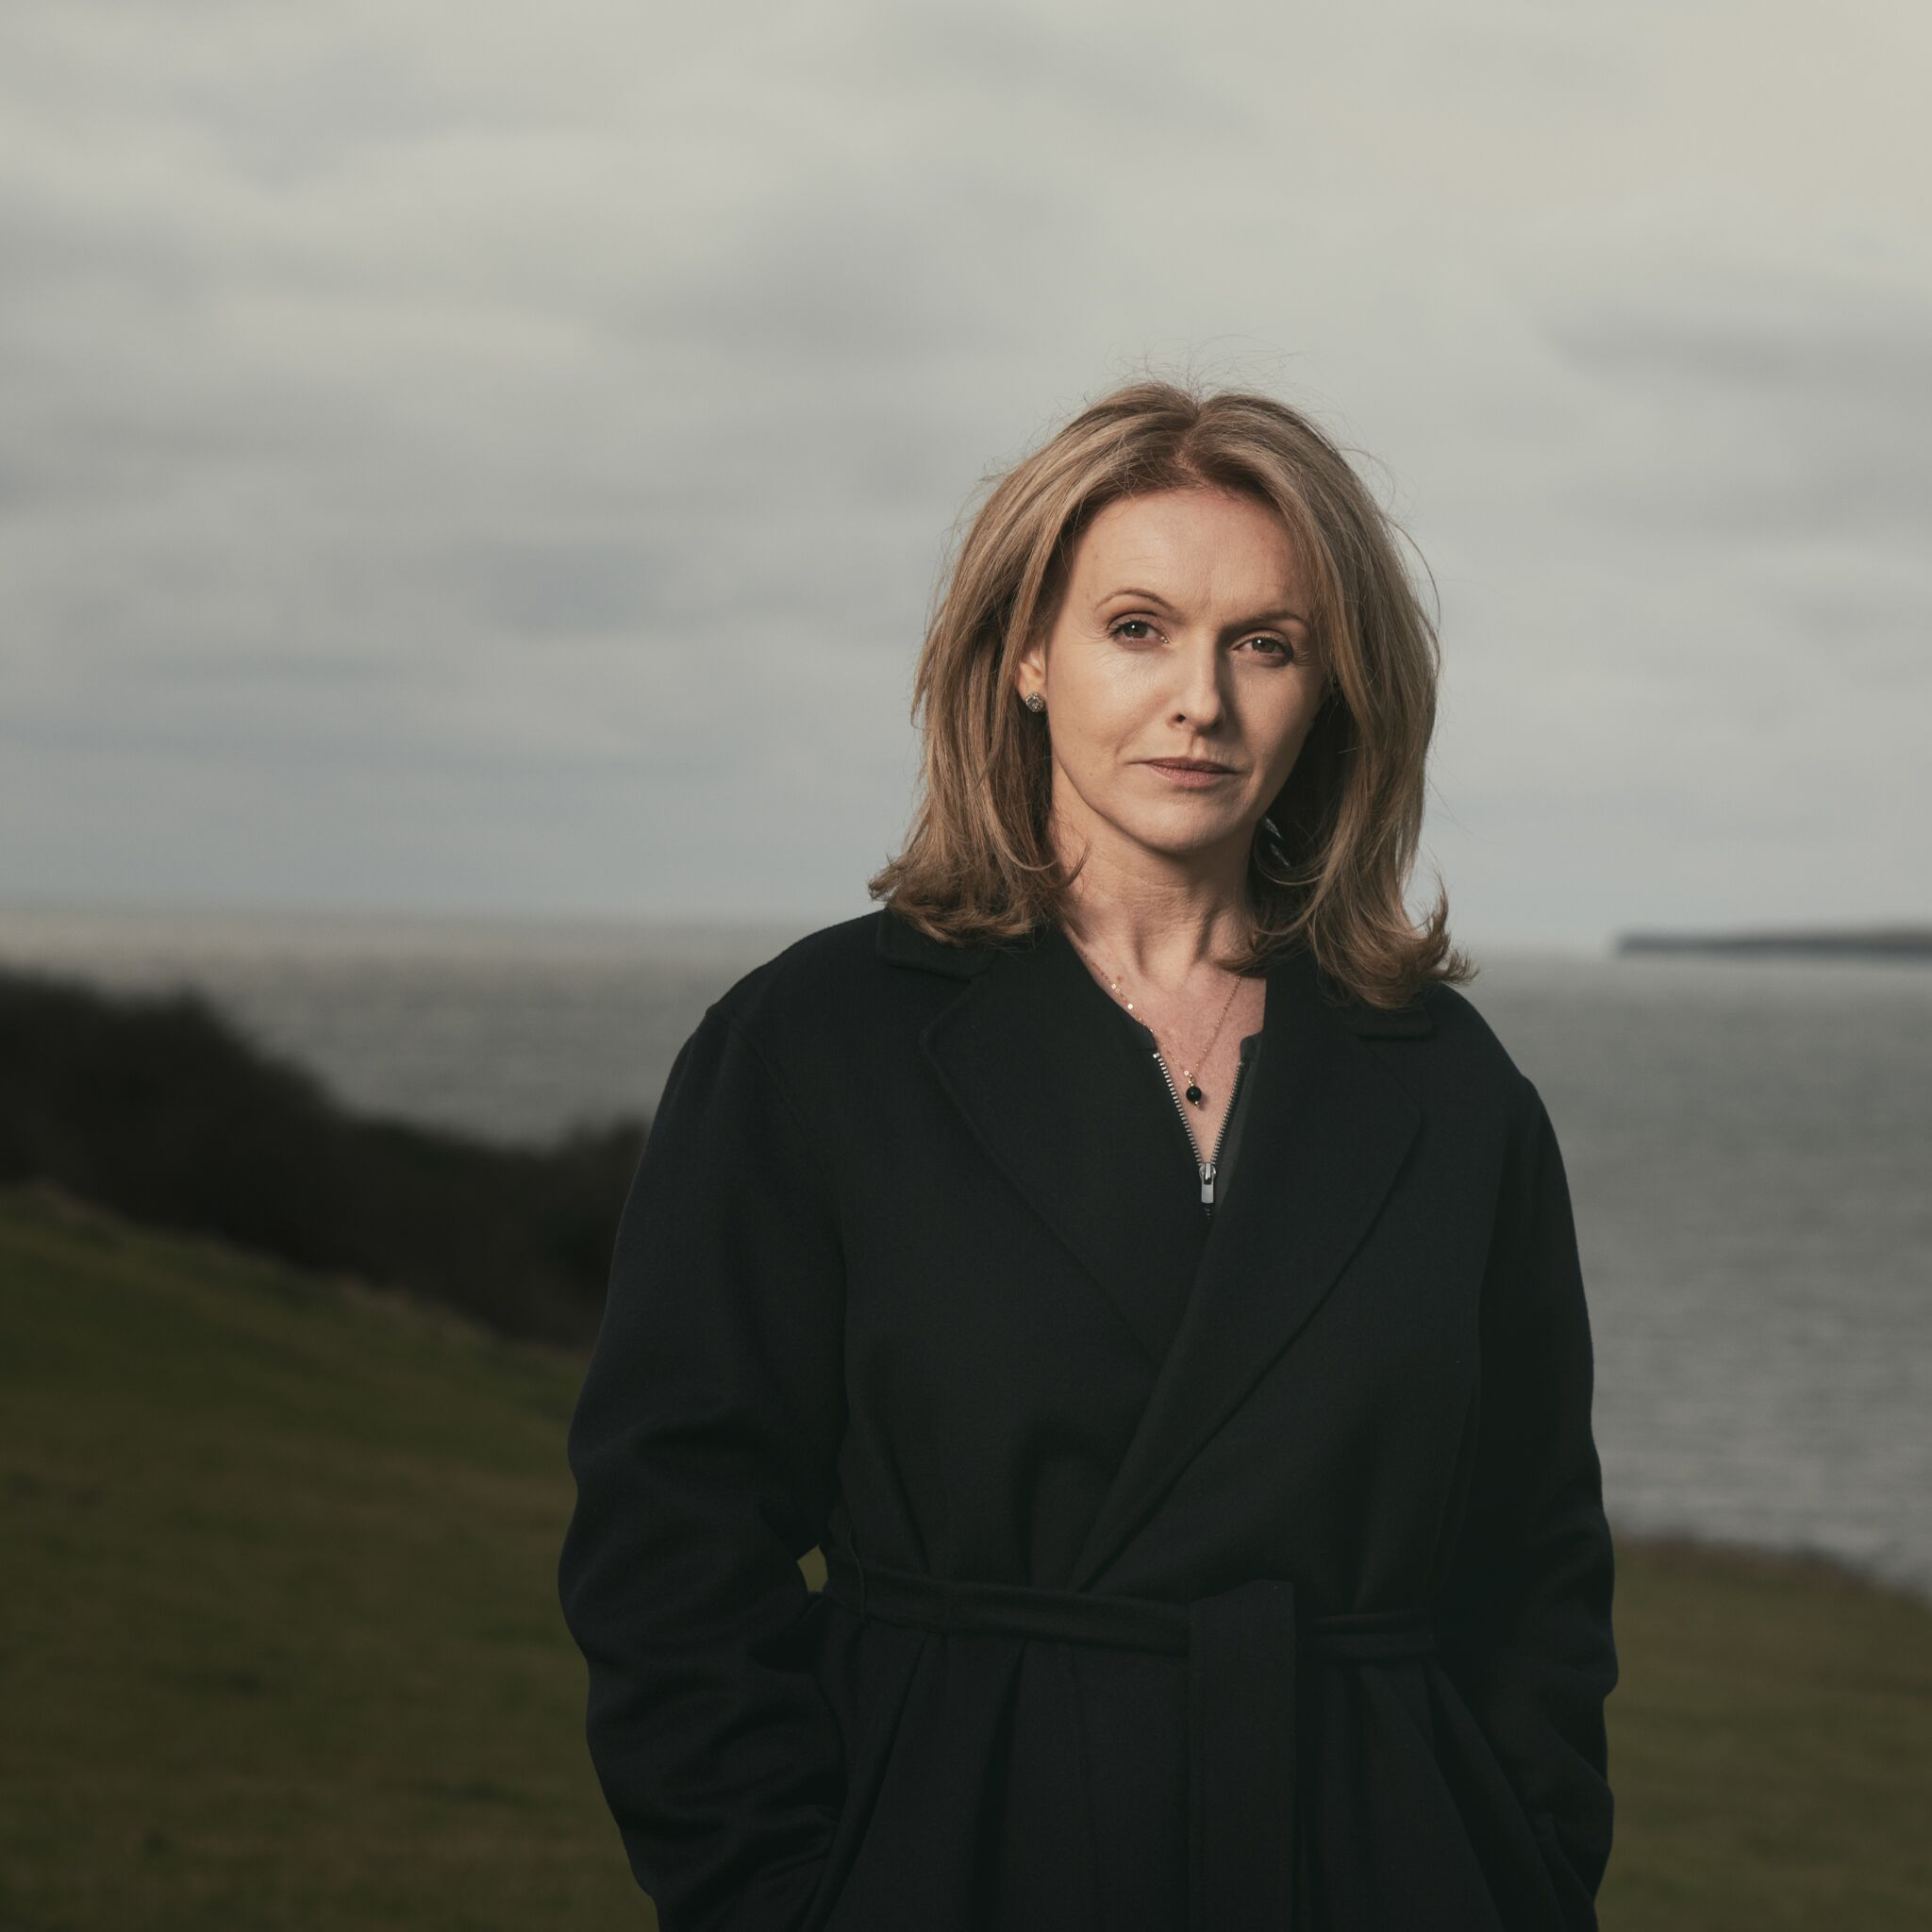 Dervla Kirwan and Seána Kerslake star in 'Smother' currently shooting in Co. Clare